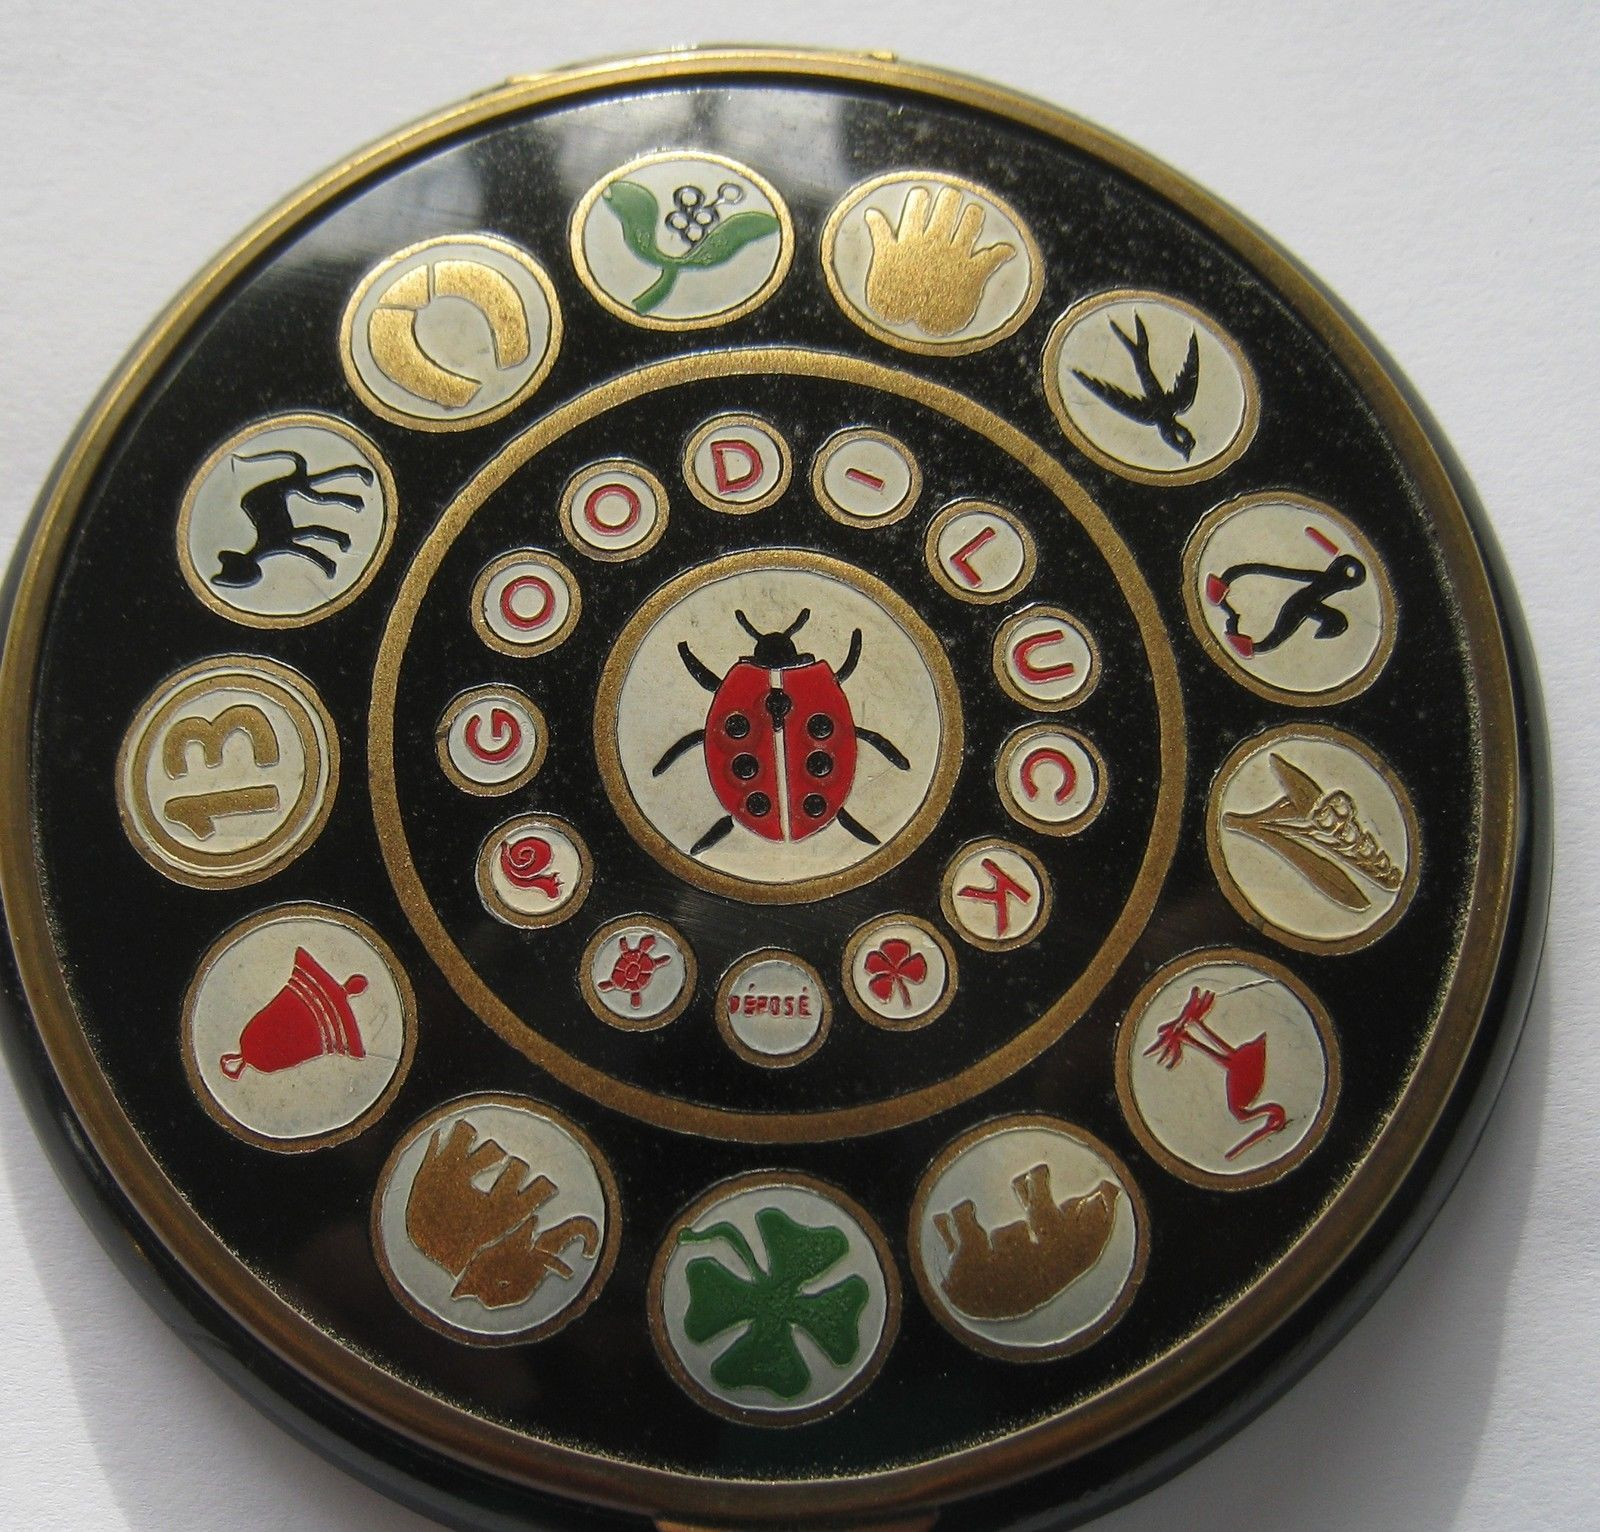 Vintage French Bakelite Compact Featuring Good Luck Symbols